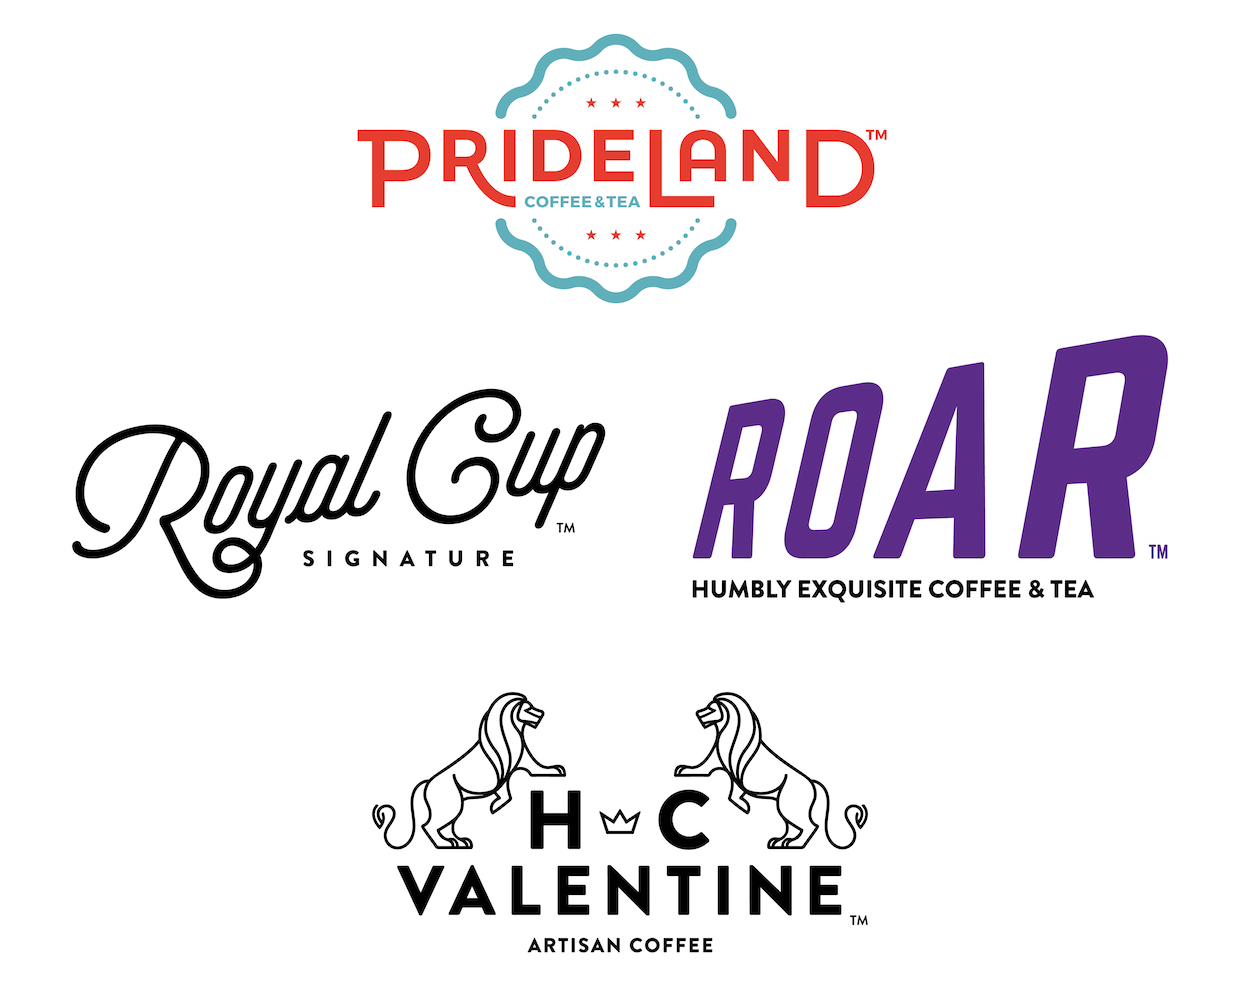 Royal Cup Coffee brands